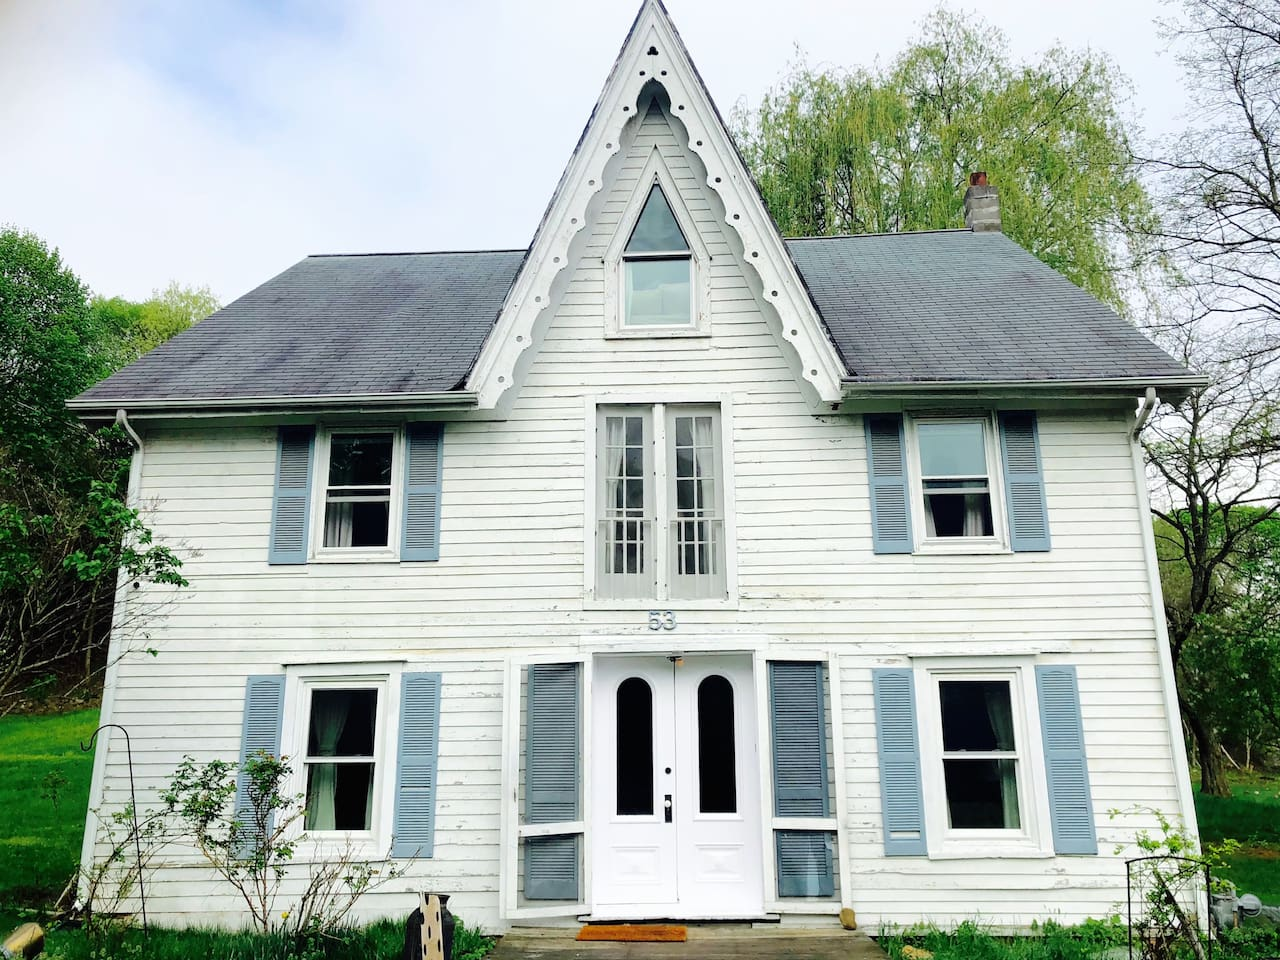 Welcome to Sparrow House!  An historic Carpenter Gothic Victorian built in 1859 by Captain L.P. Clark.